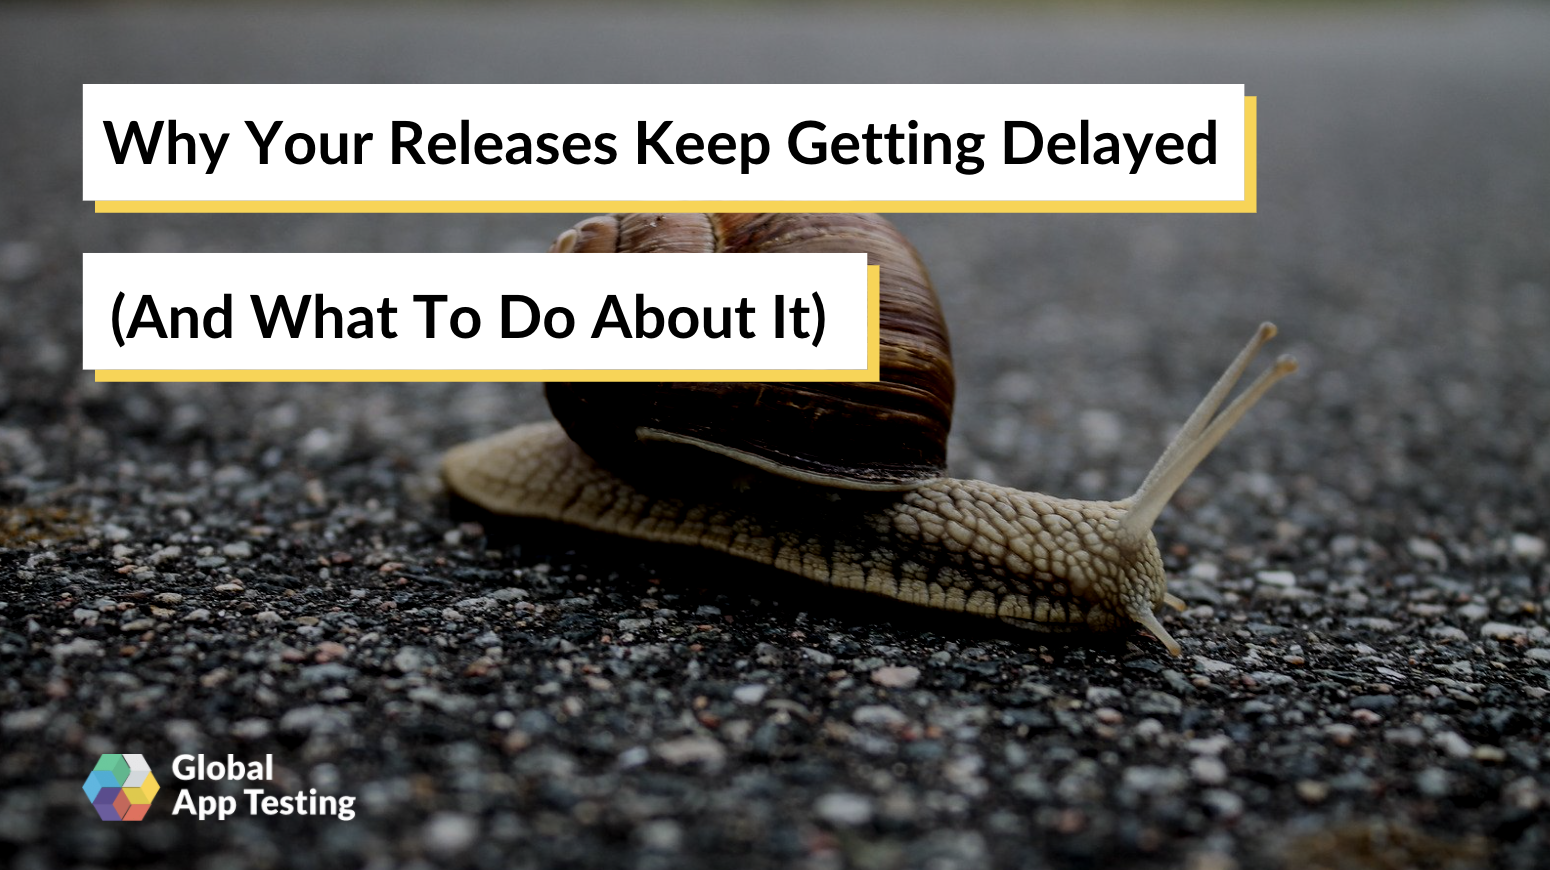 Why Your Releases Keep Getting Delayed